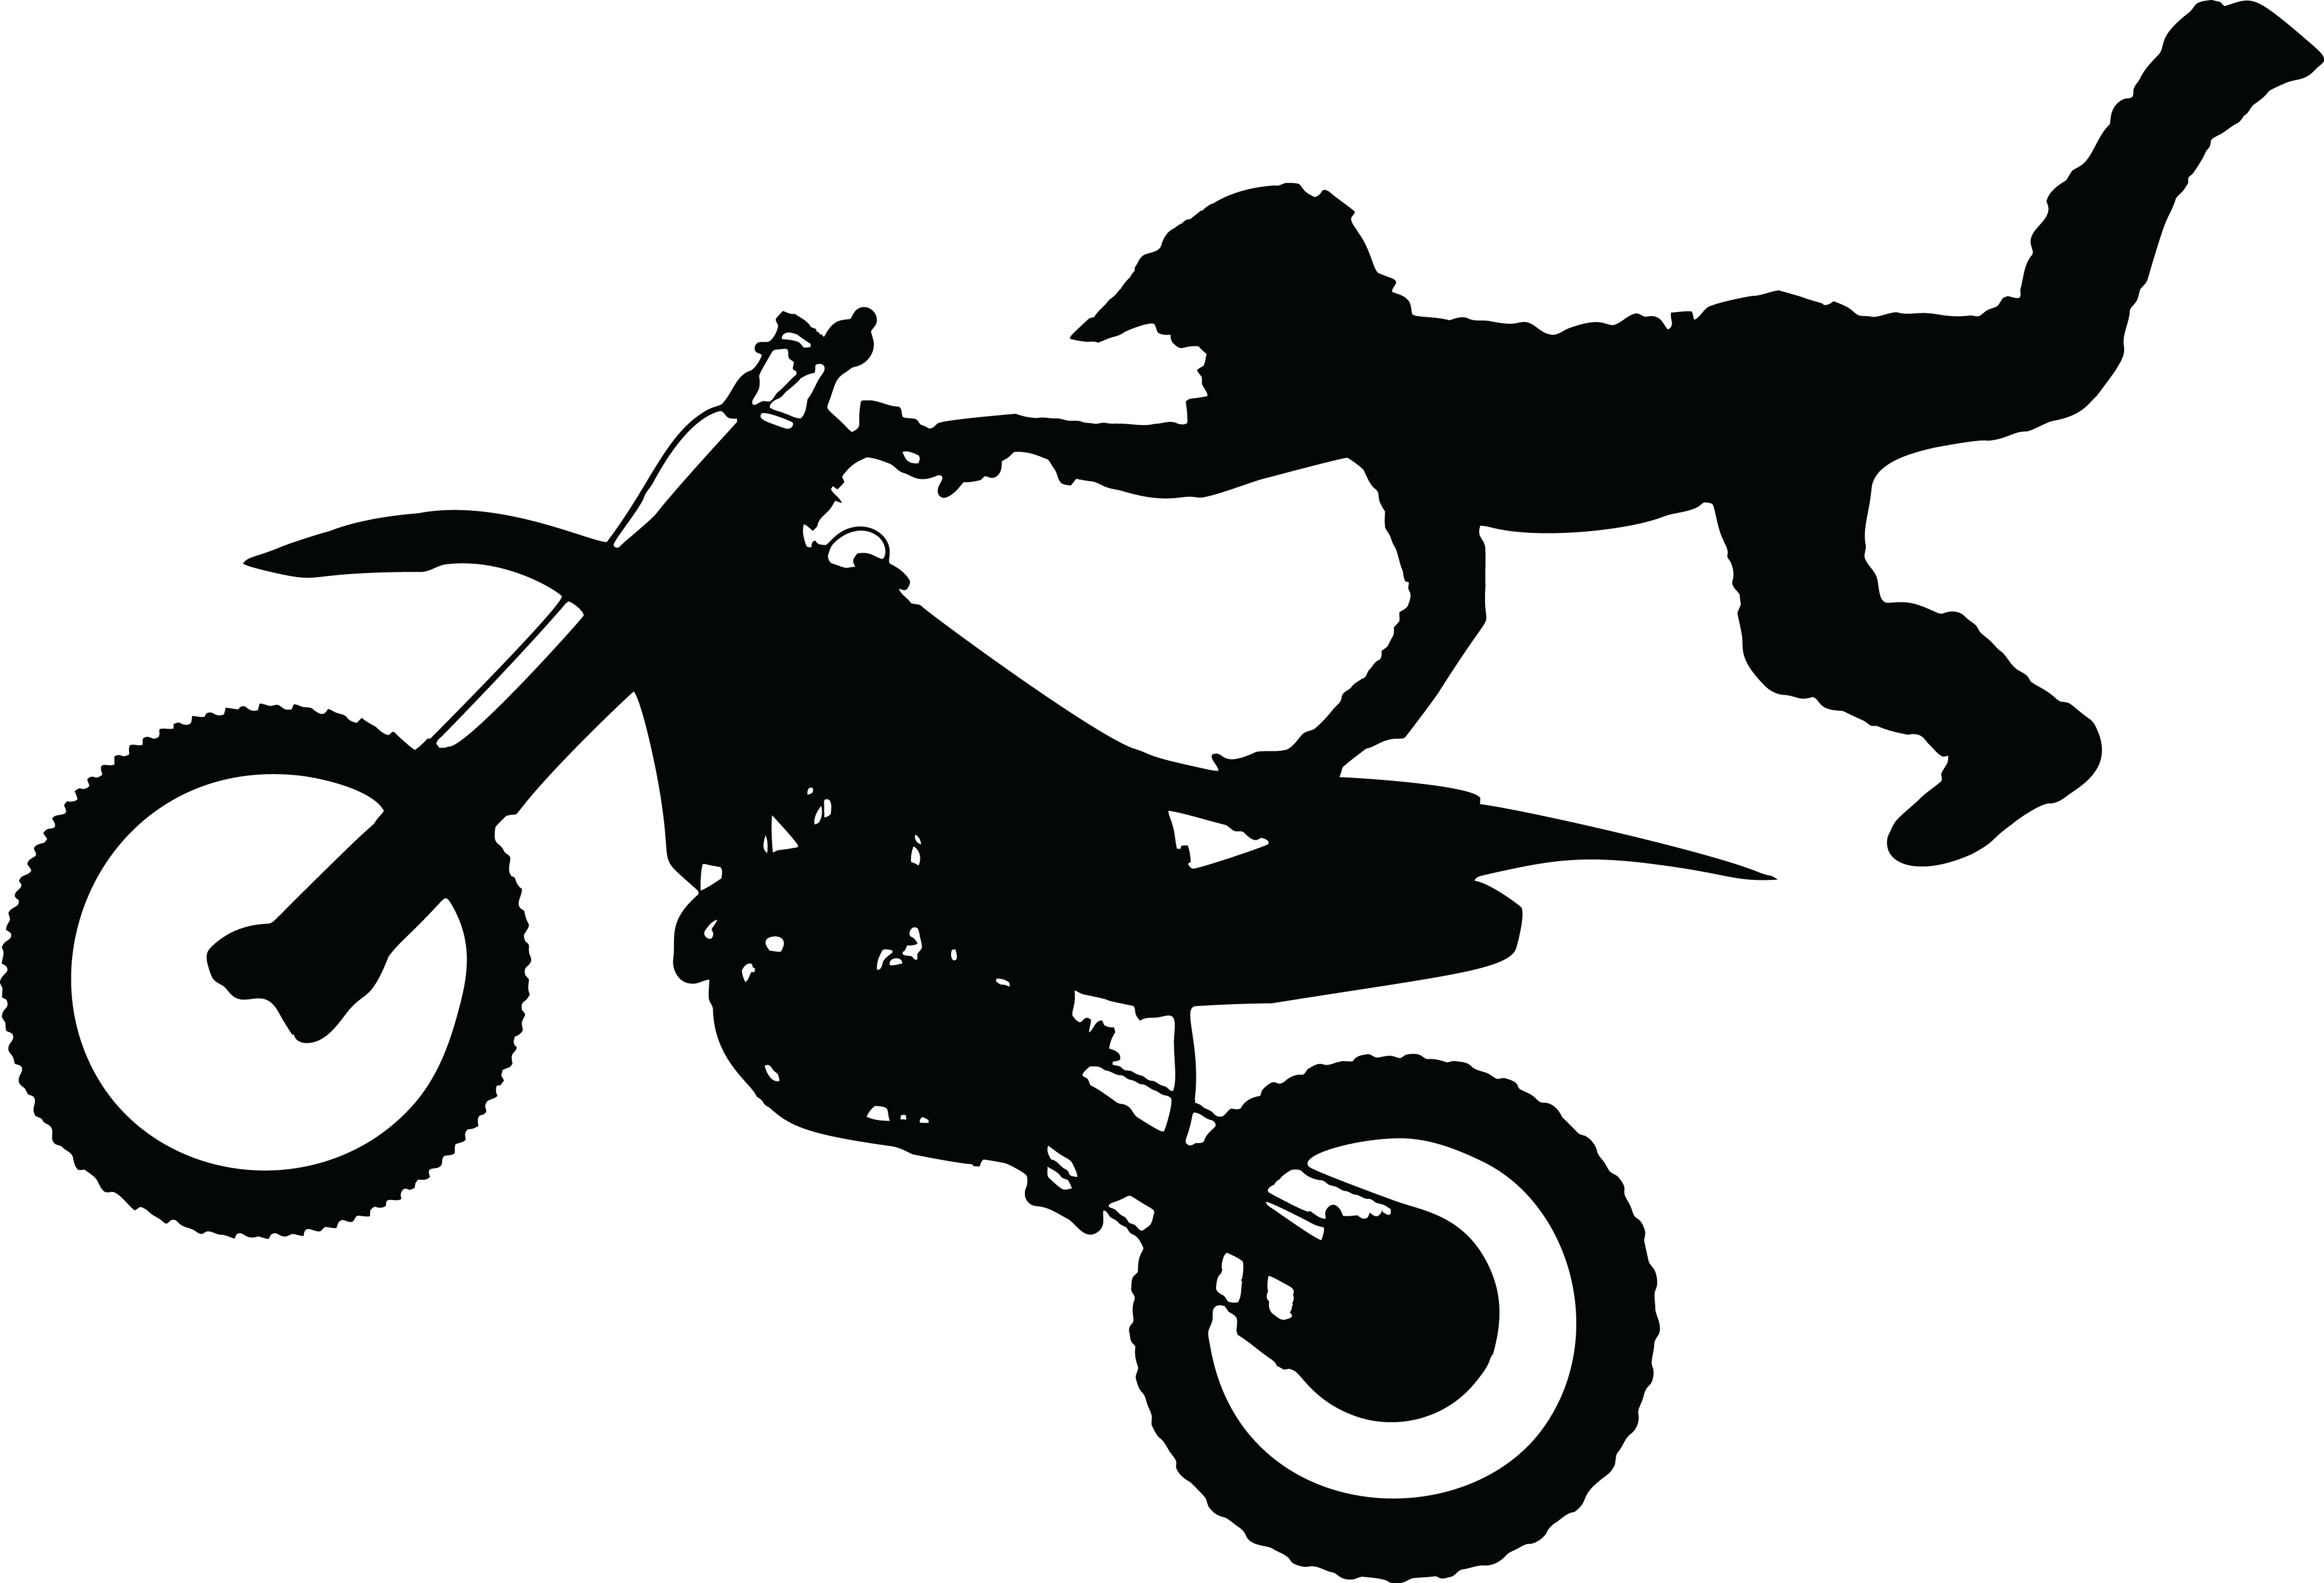 Dirt bike png free. Transparent motorcycle man picture transparent library